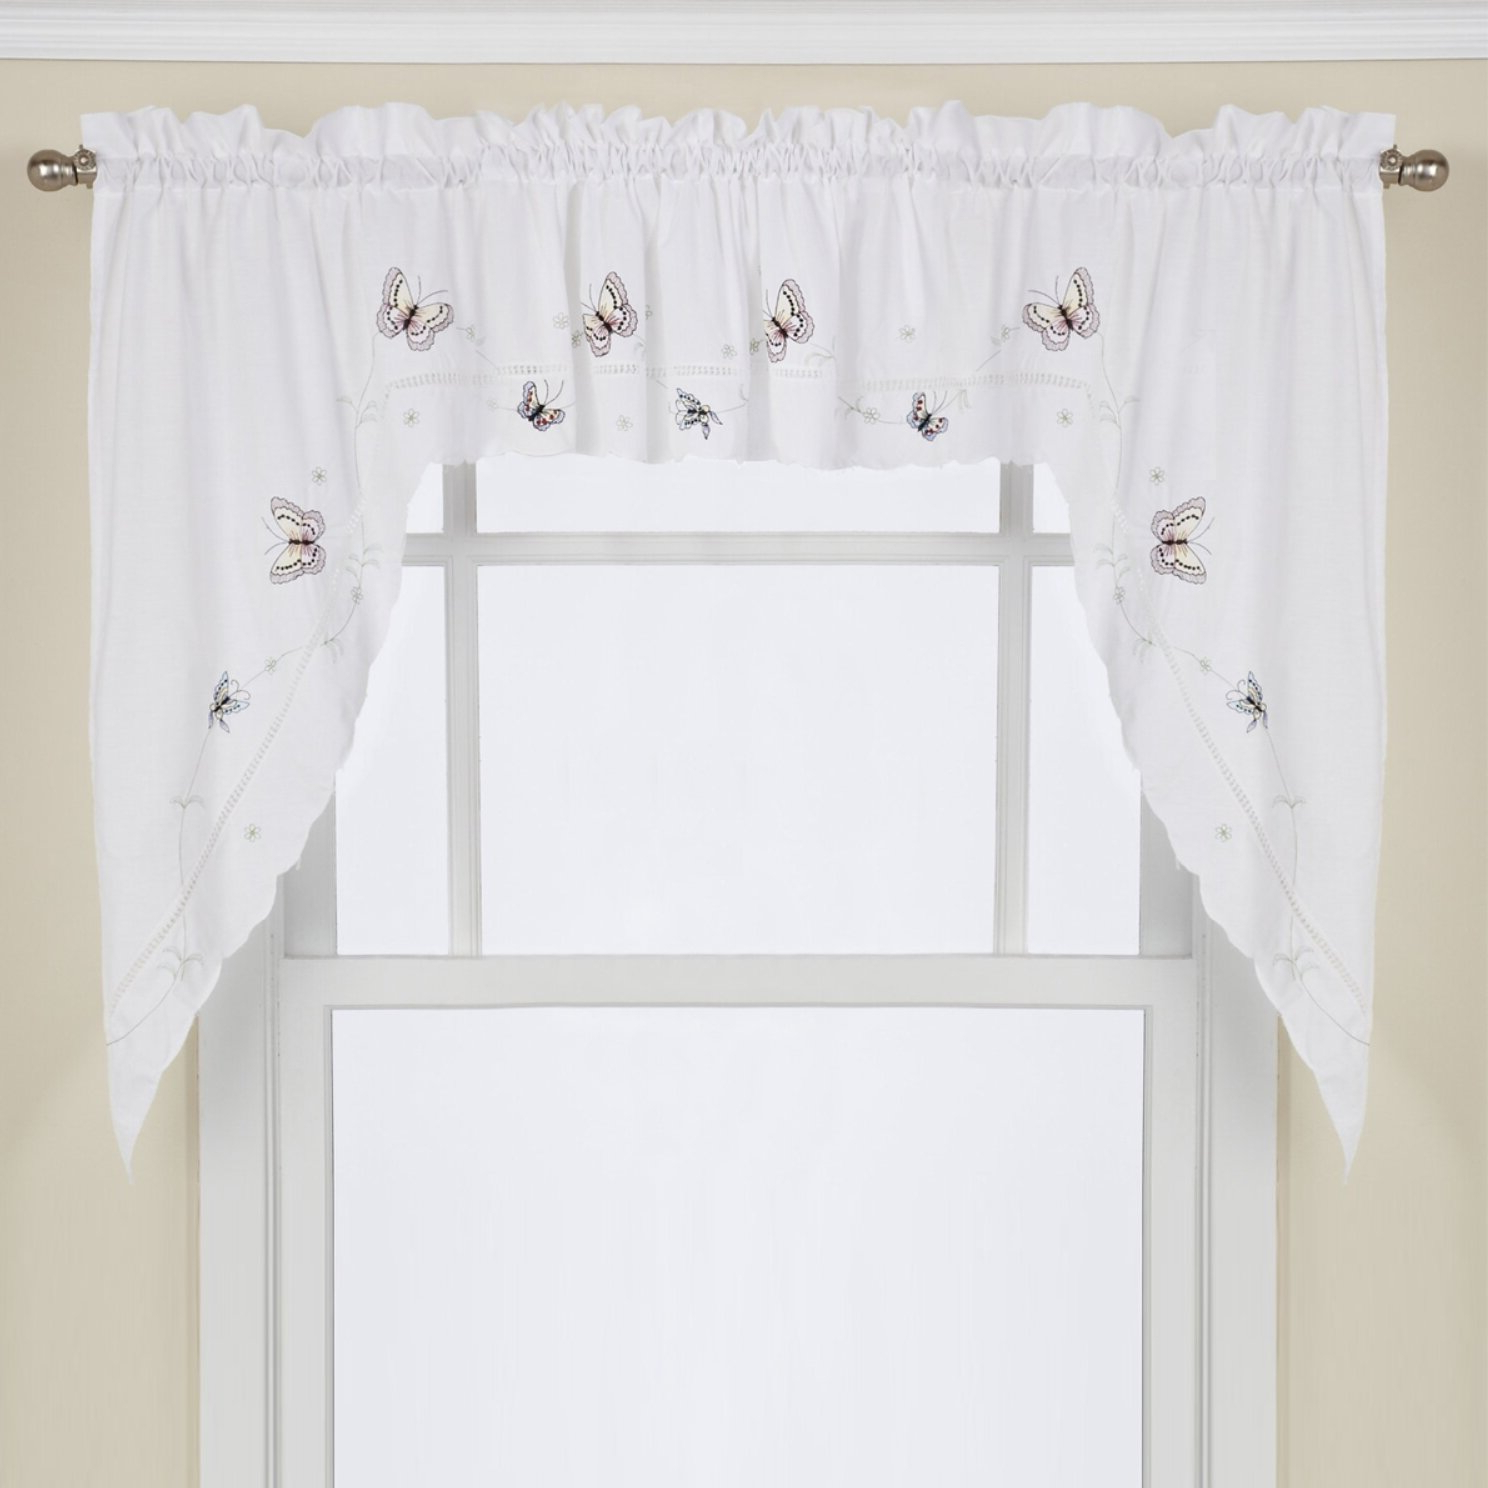 "Schlater Embroidered Butterfly Kitchen 29"" Swag Curtain Valance Intended For Current Abby Embroidered 5 Piece Curtain Tier And Swag Sets (View 15 of 20)"